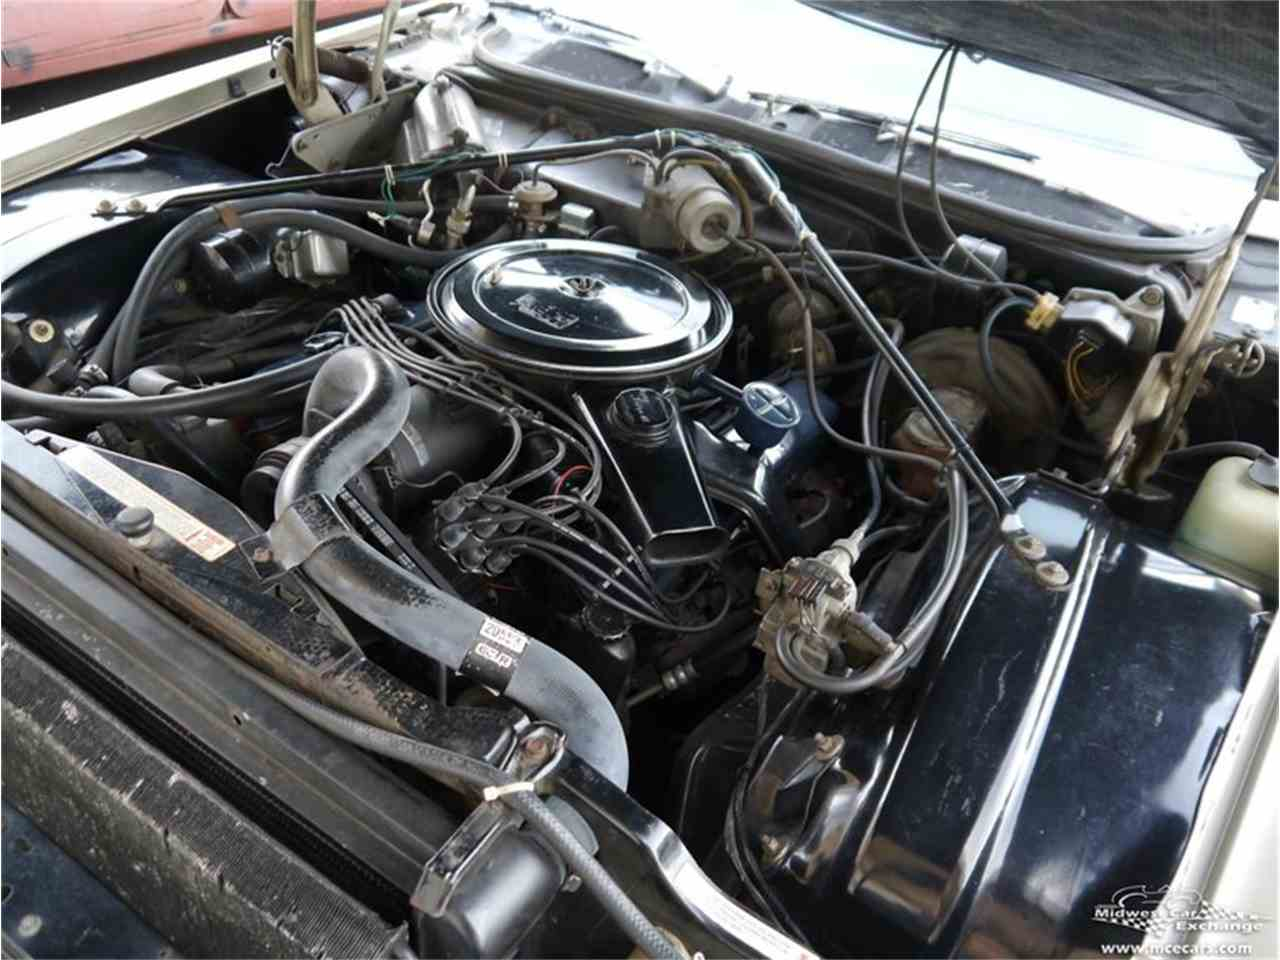 Large Picture of Classic '70 Fleetwood Brougham located in Illinois - $12,900.00 Offered by Midwest Car Exchange - M9KI